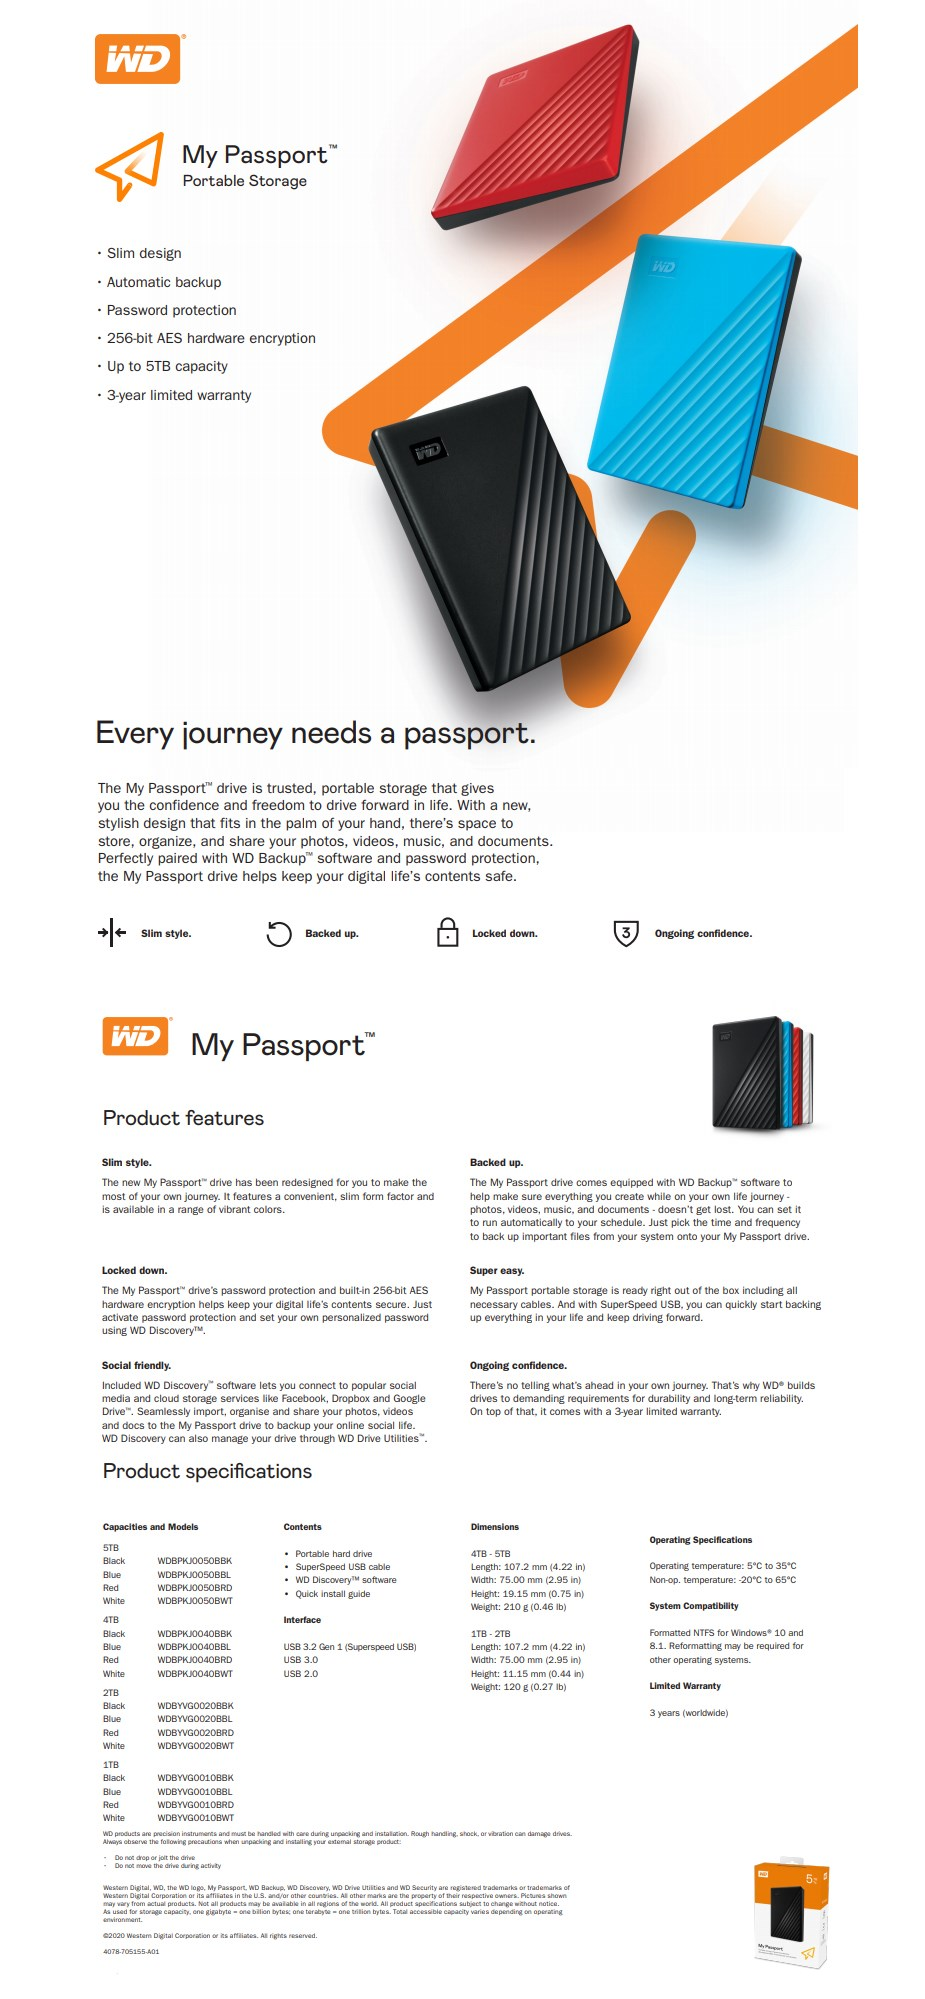 wd-my-passport-1tb-usb-30-portable-storage-black-ac39876-7.jpg